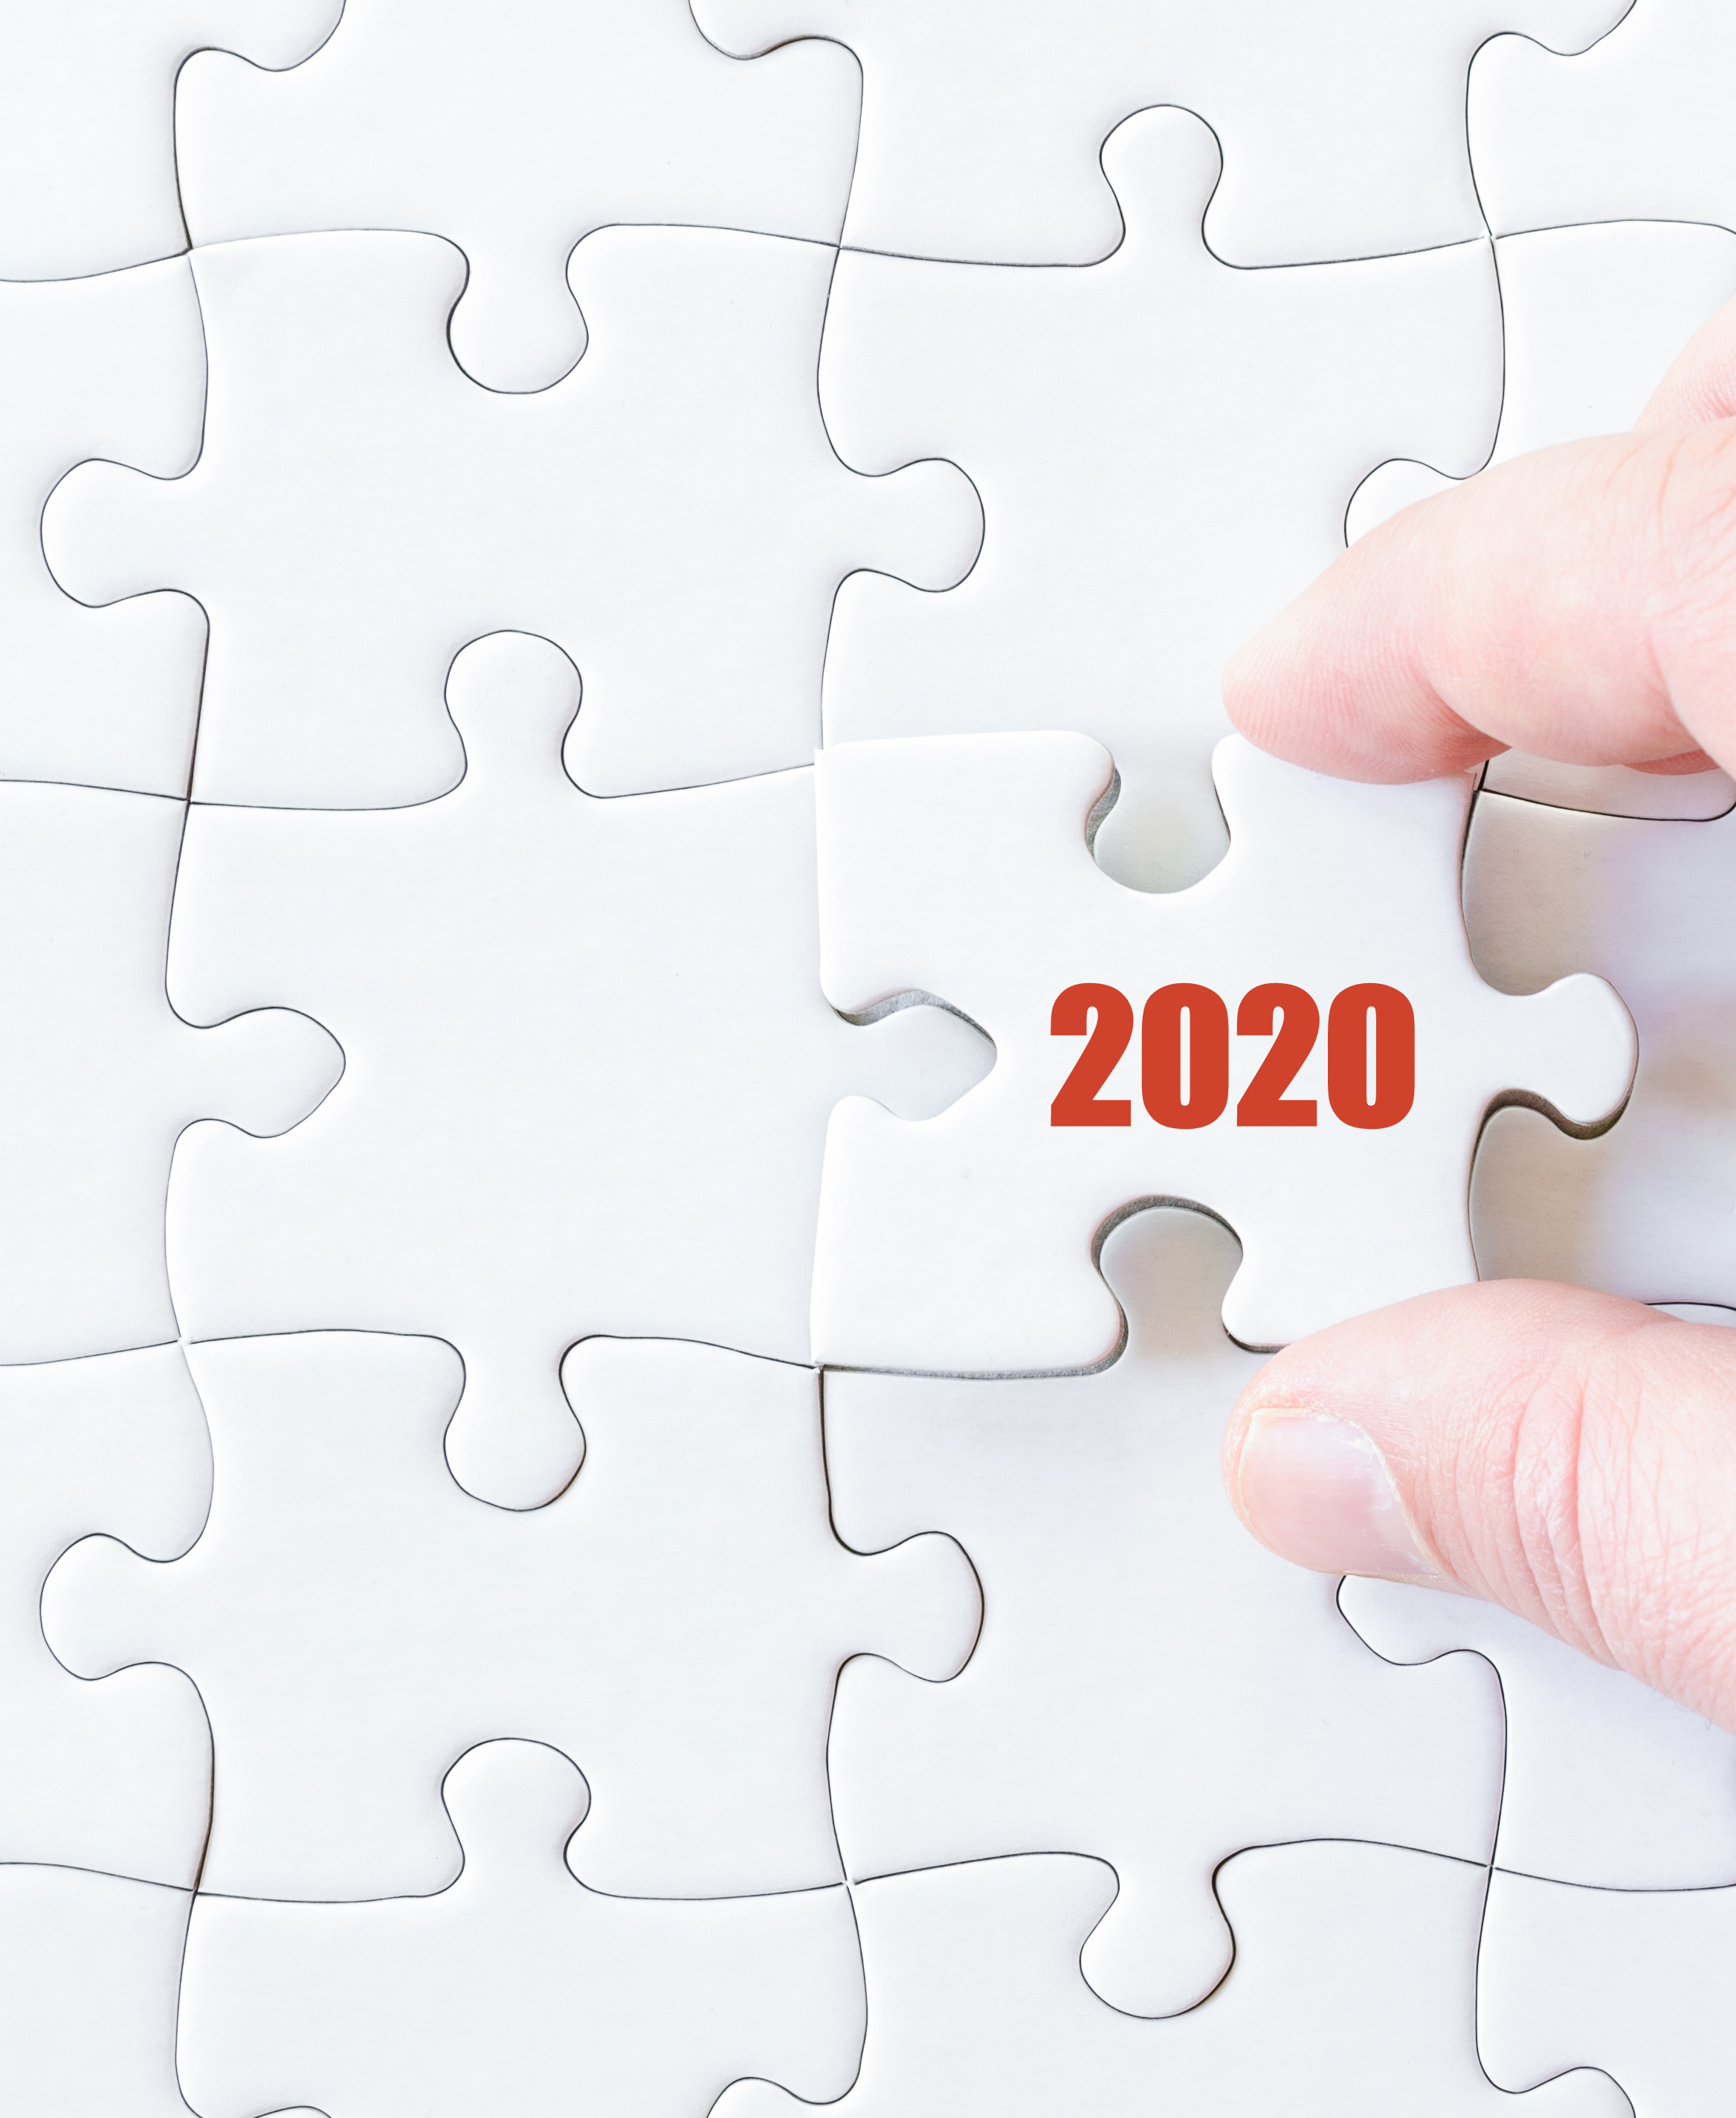 Missing jigsaw puzzle piece with  year  2020. Business concept image for completing the puzzle.